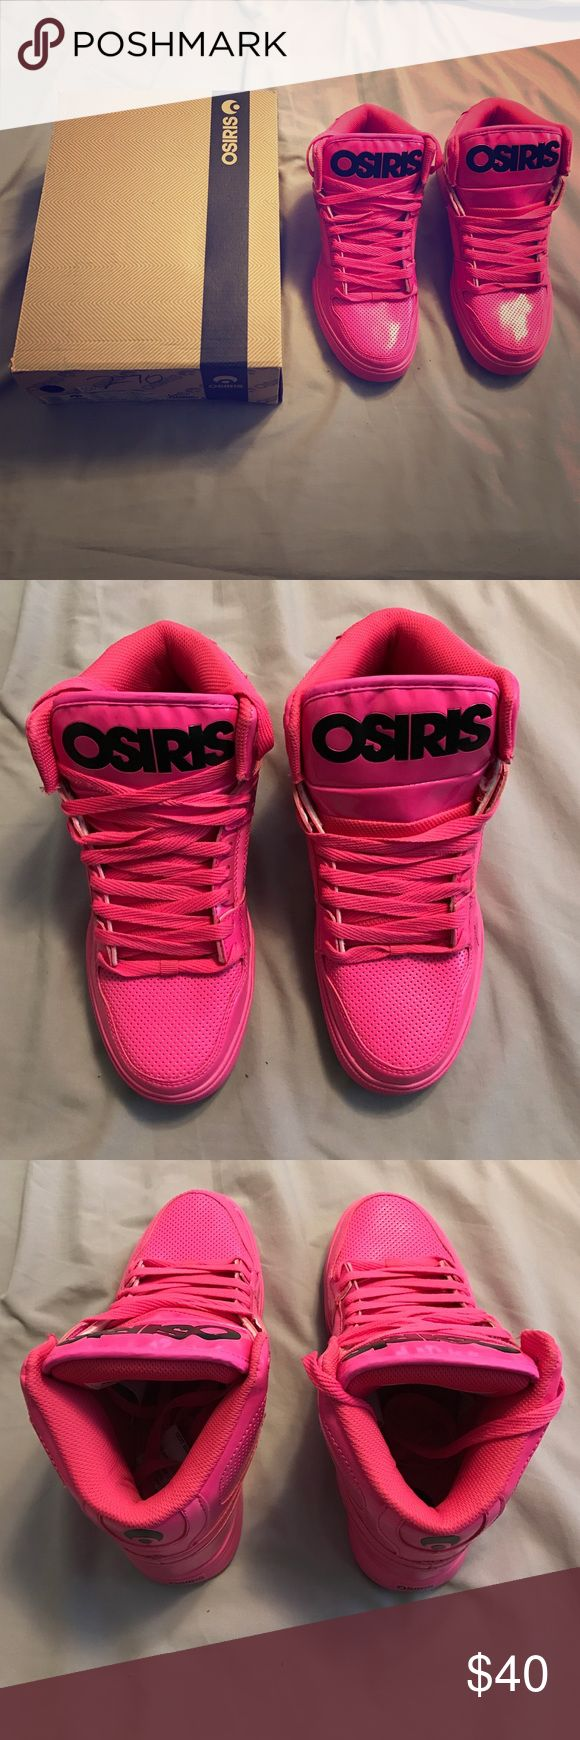 Brand New Osiris Neon Pink Skateboarding Shoes Brand new Osiris men's 9.5 skateboarding shoes in neon pink. Osiris Shoes Sneakers